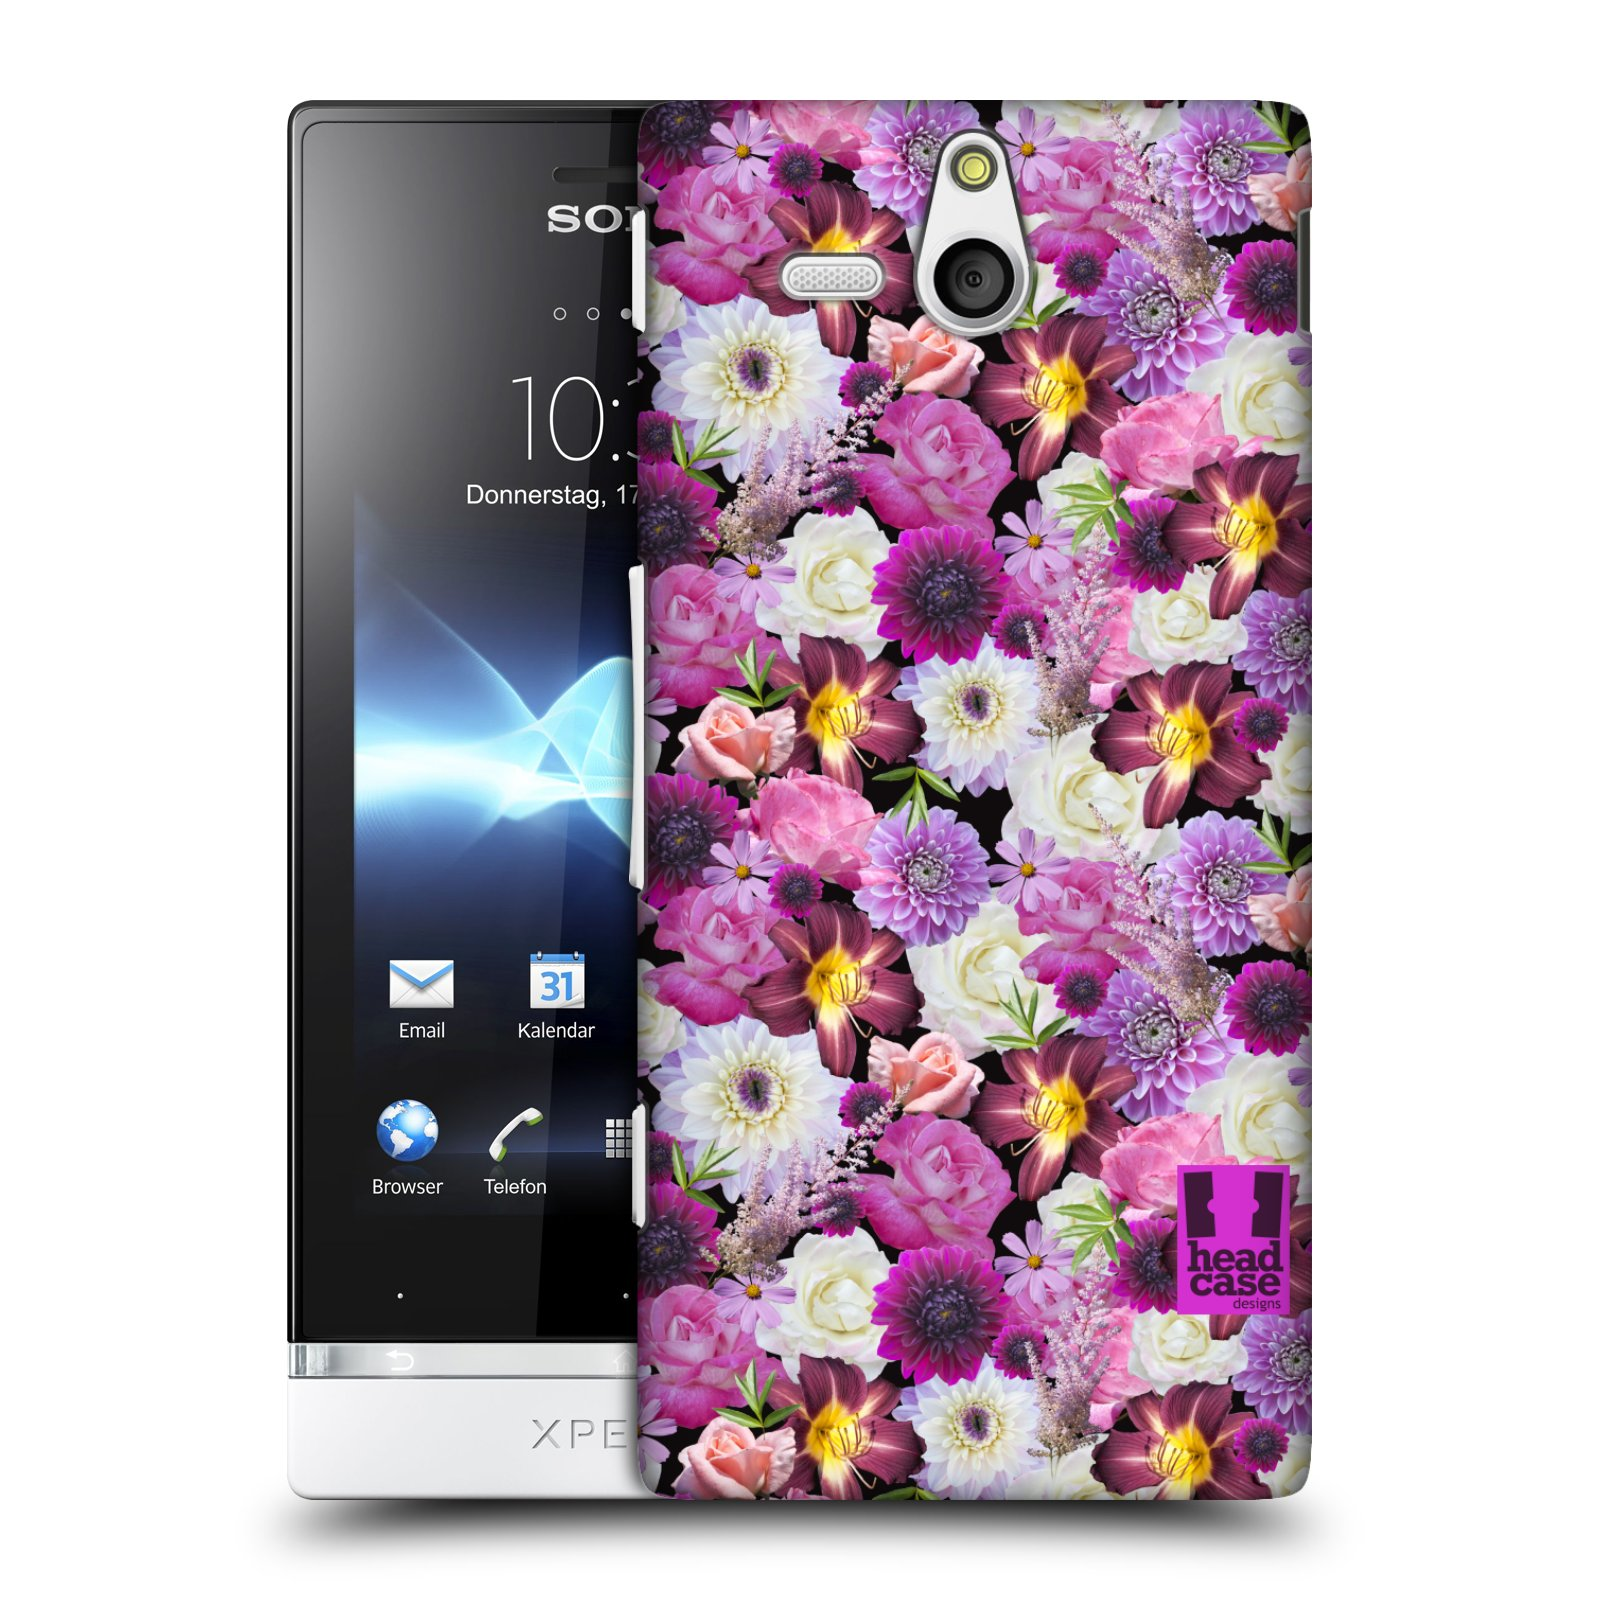 HEAD-CASE-DESIGNS-FLOWERS-CASE-COVER-FOR-SONY-XPERIA-U-ST25i